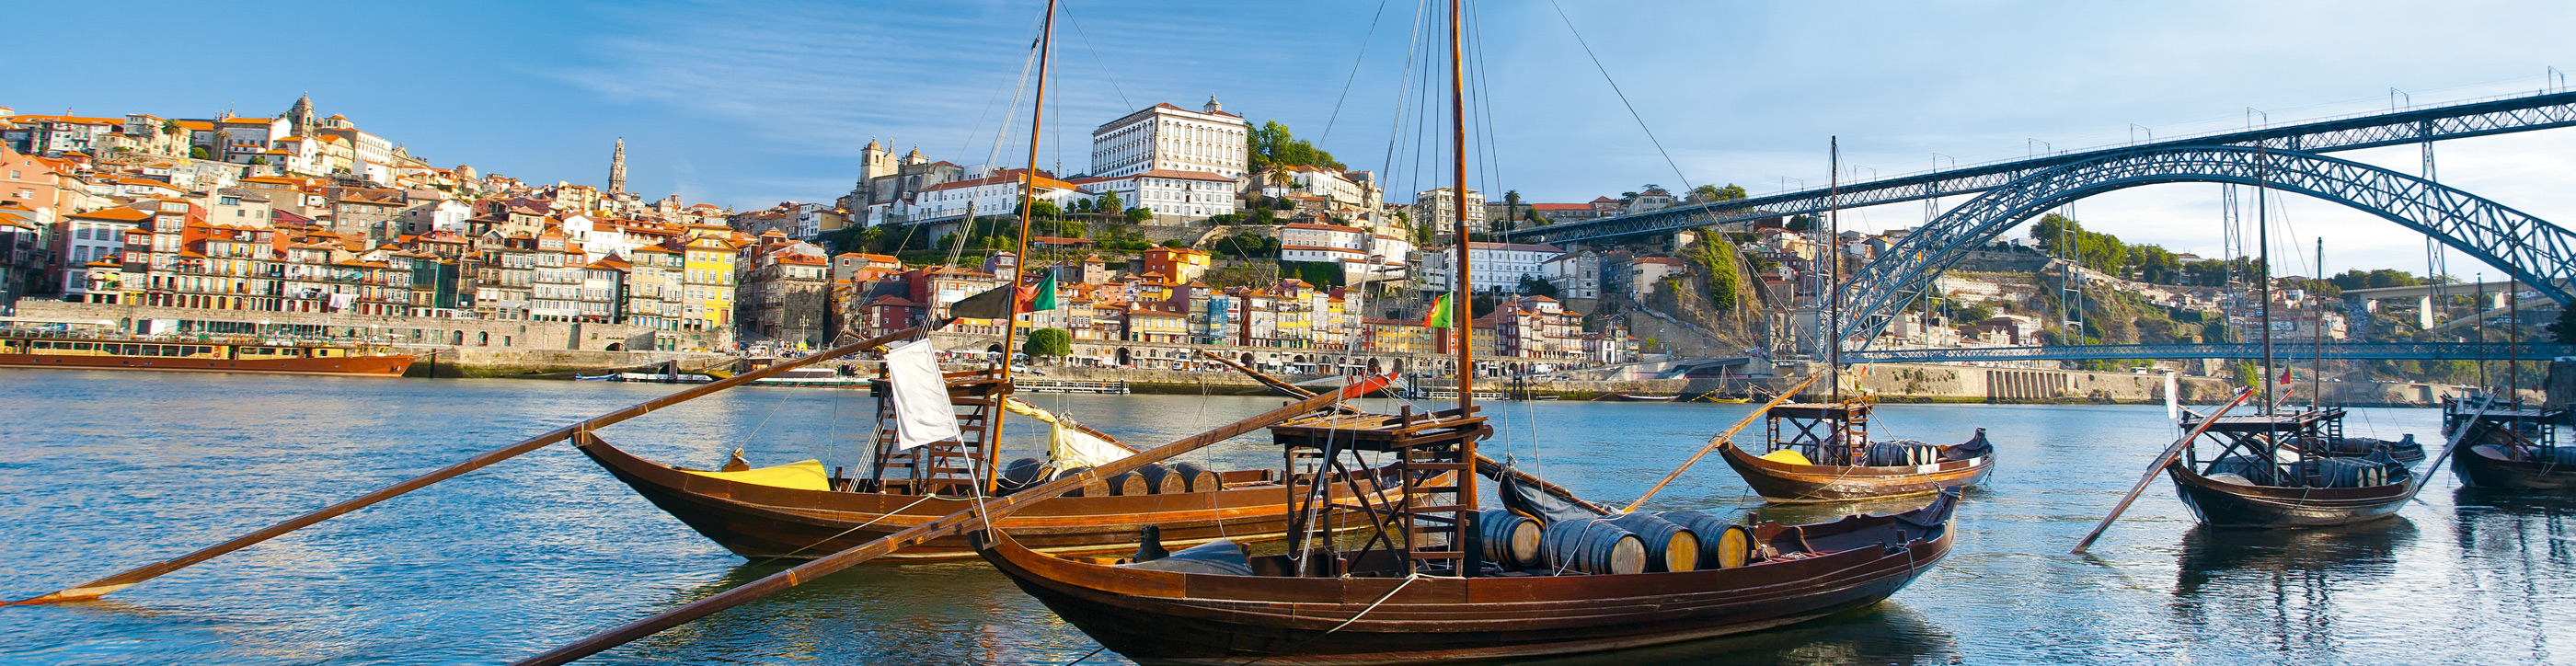 Photograph of Portugal, Spain & the Douro